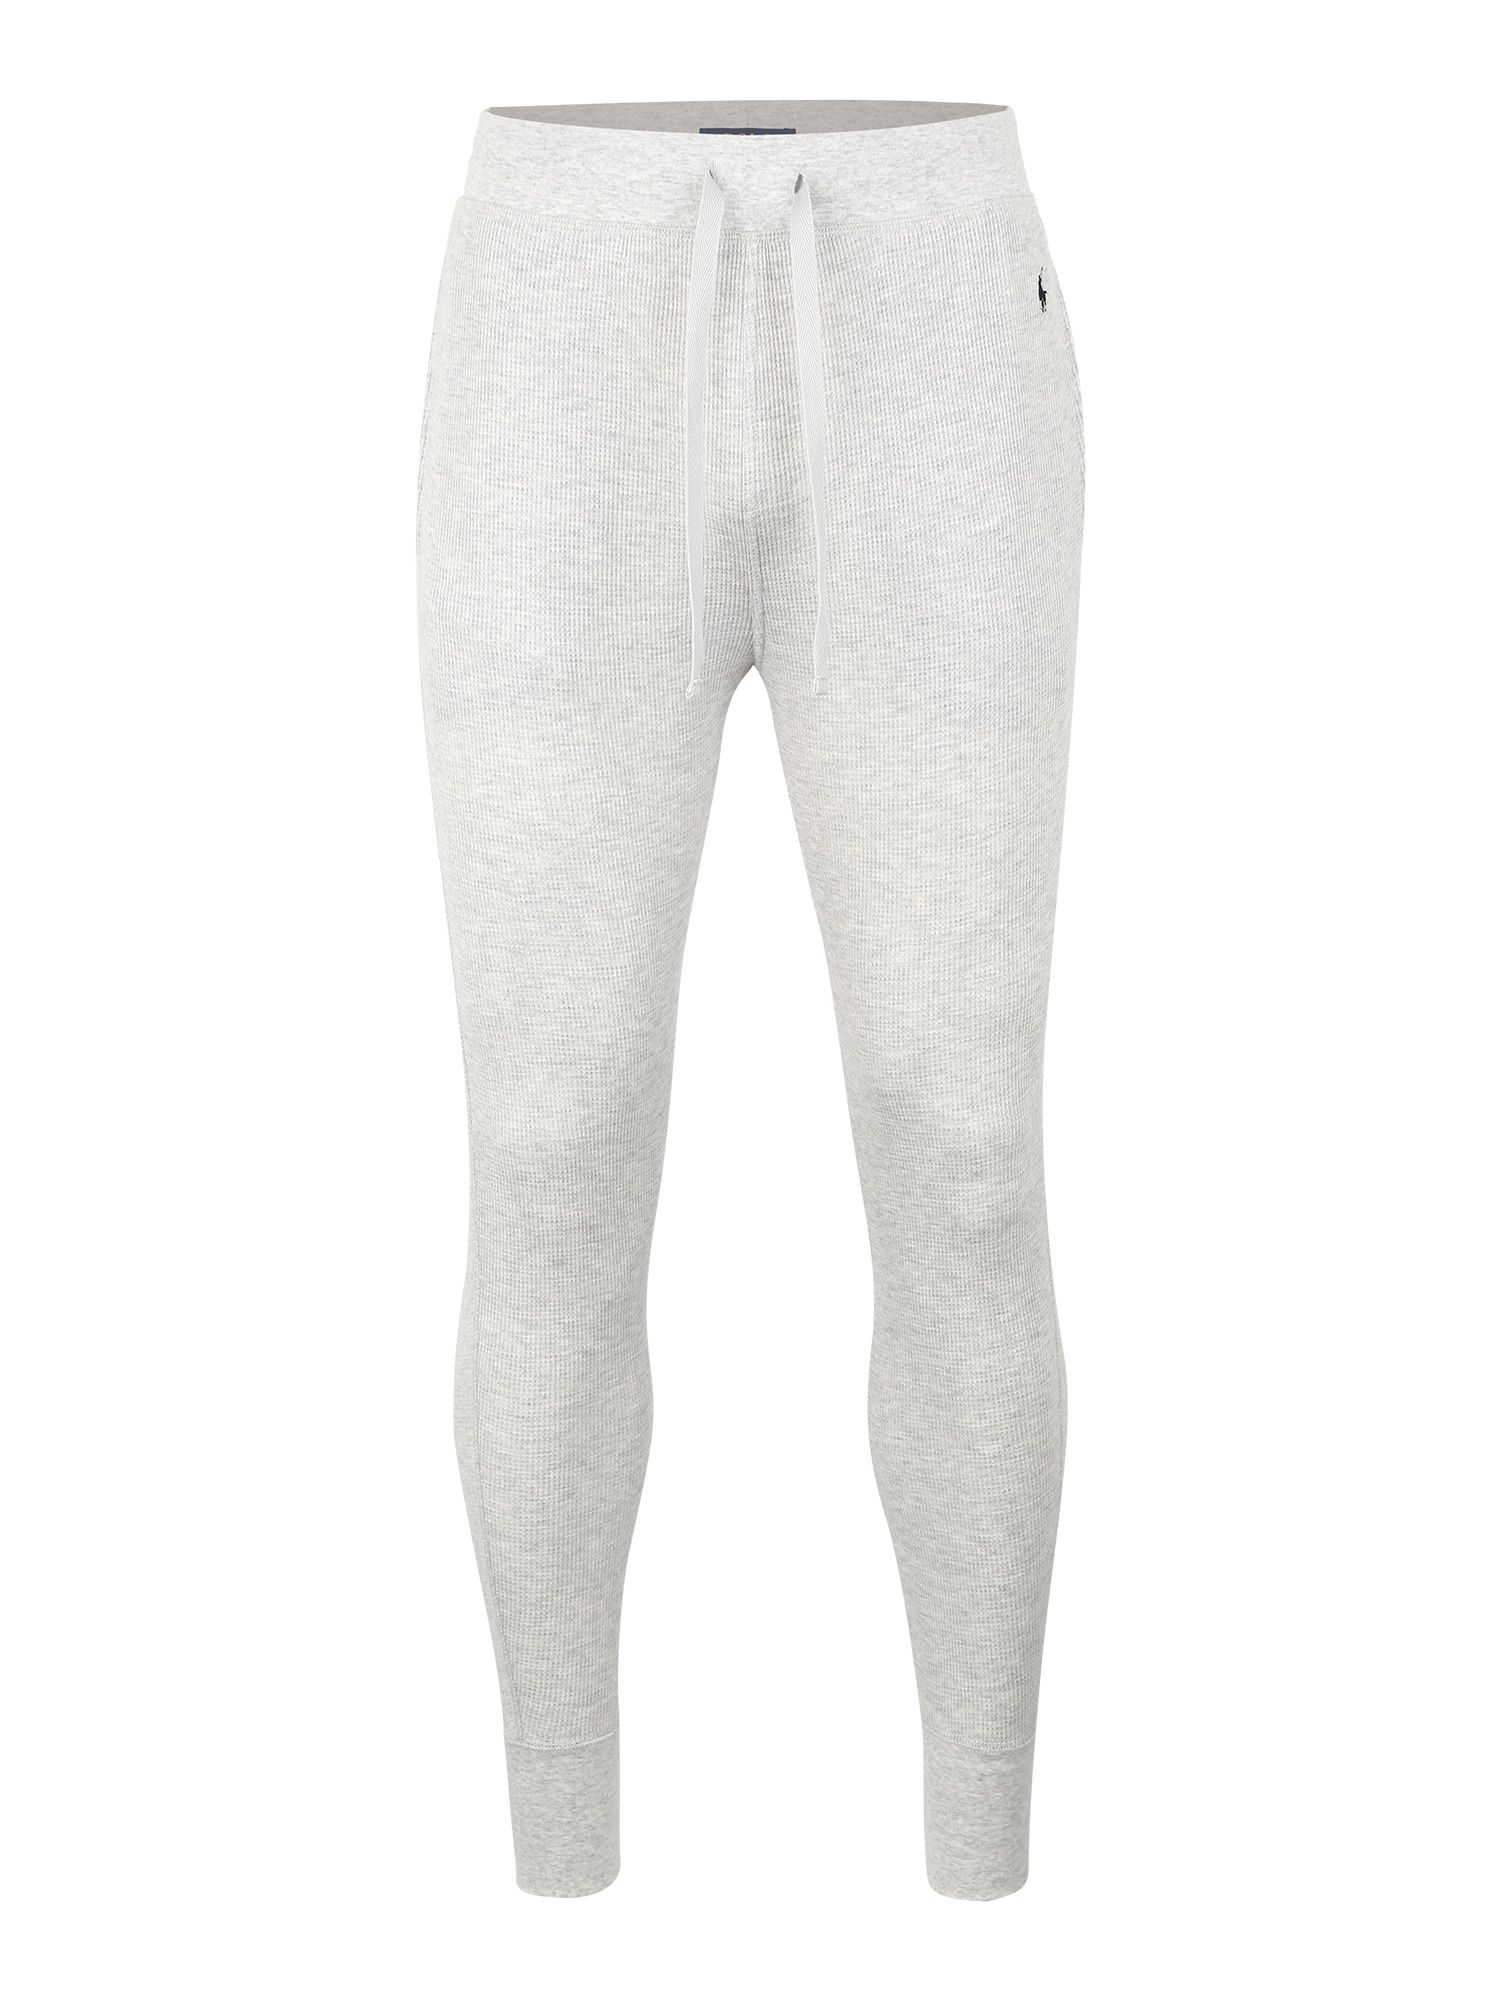 ´JOGGER-PANT-SLEEP BOTTOM´